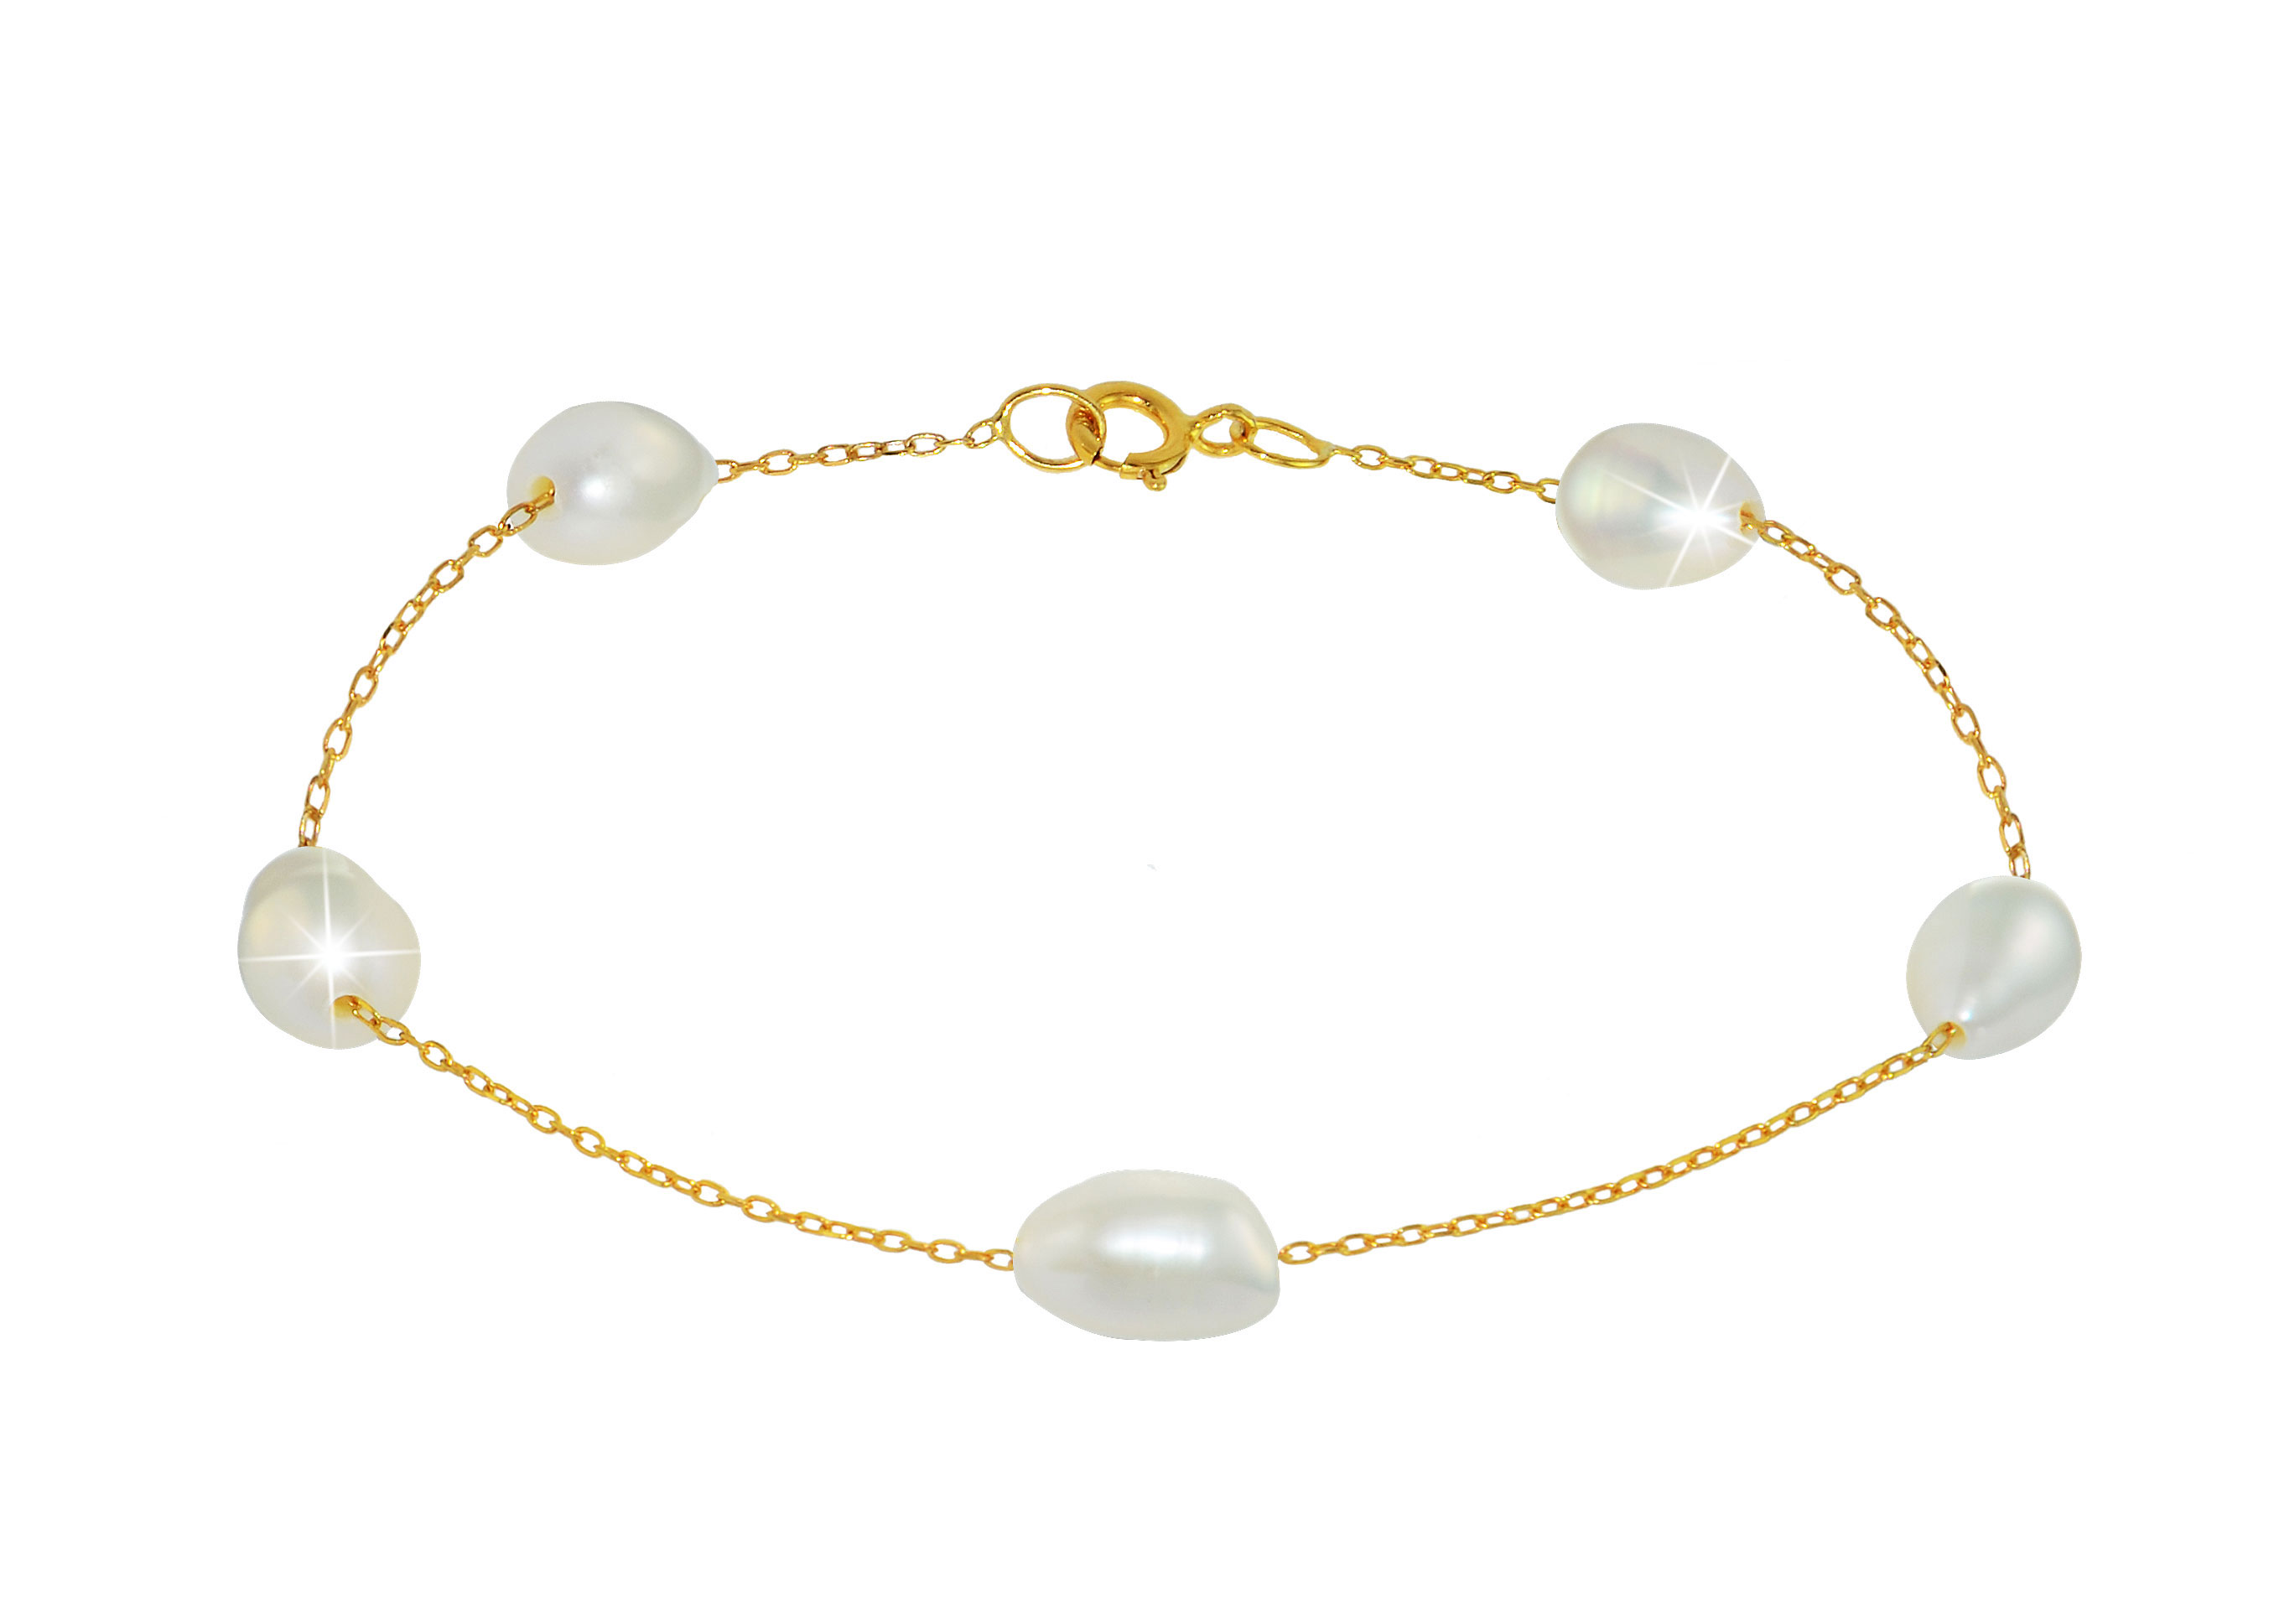 Vera Perla 10K Gold Genuine White Pearls Bracelet